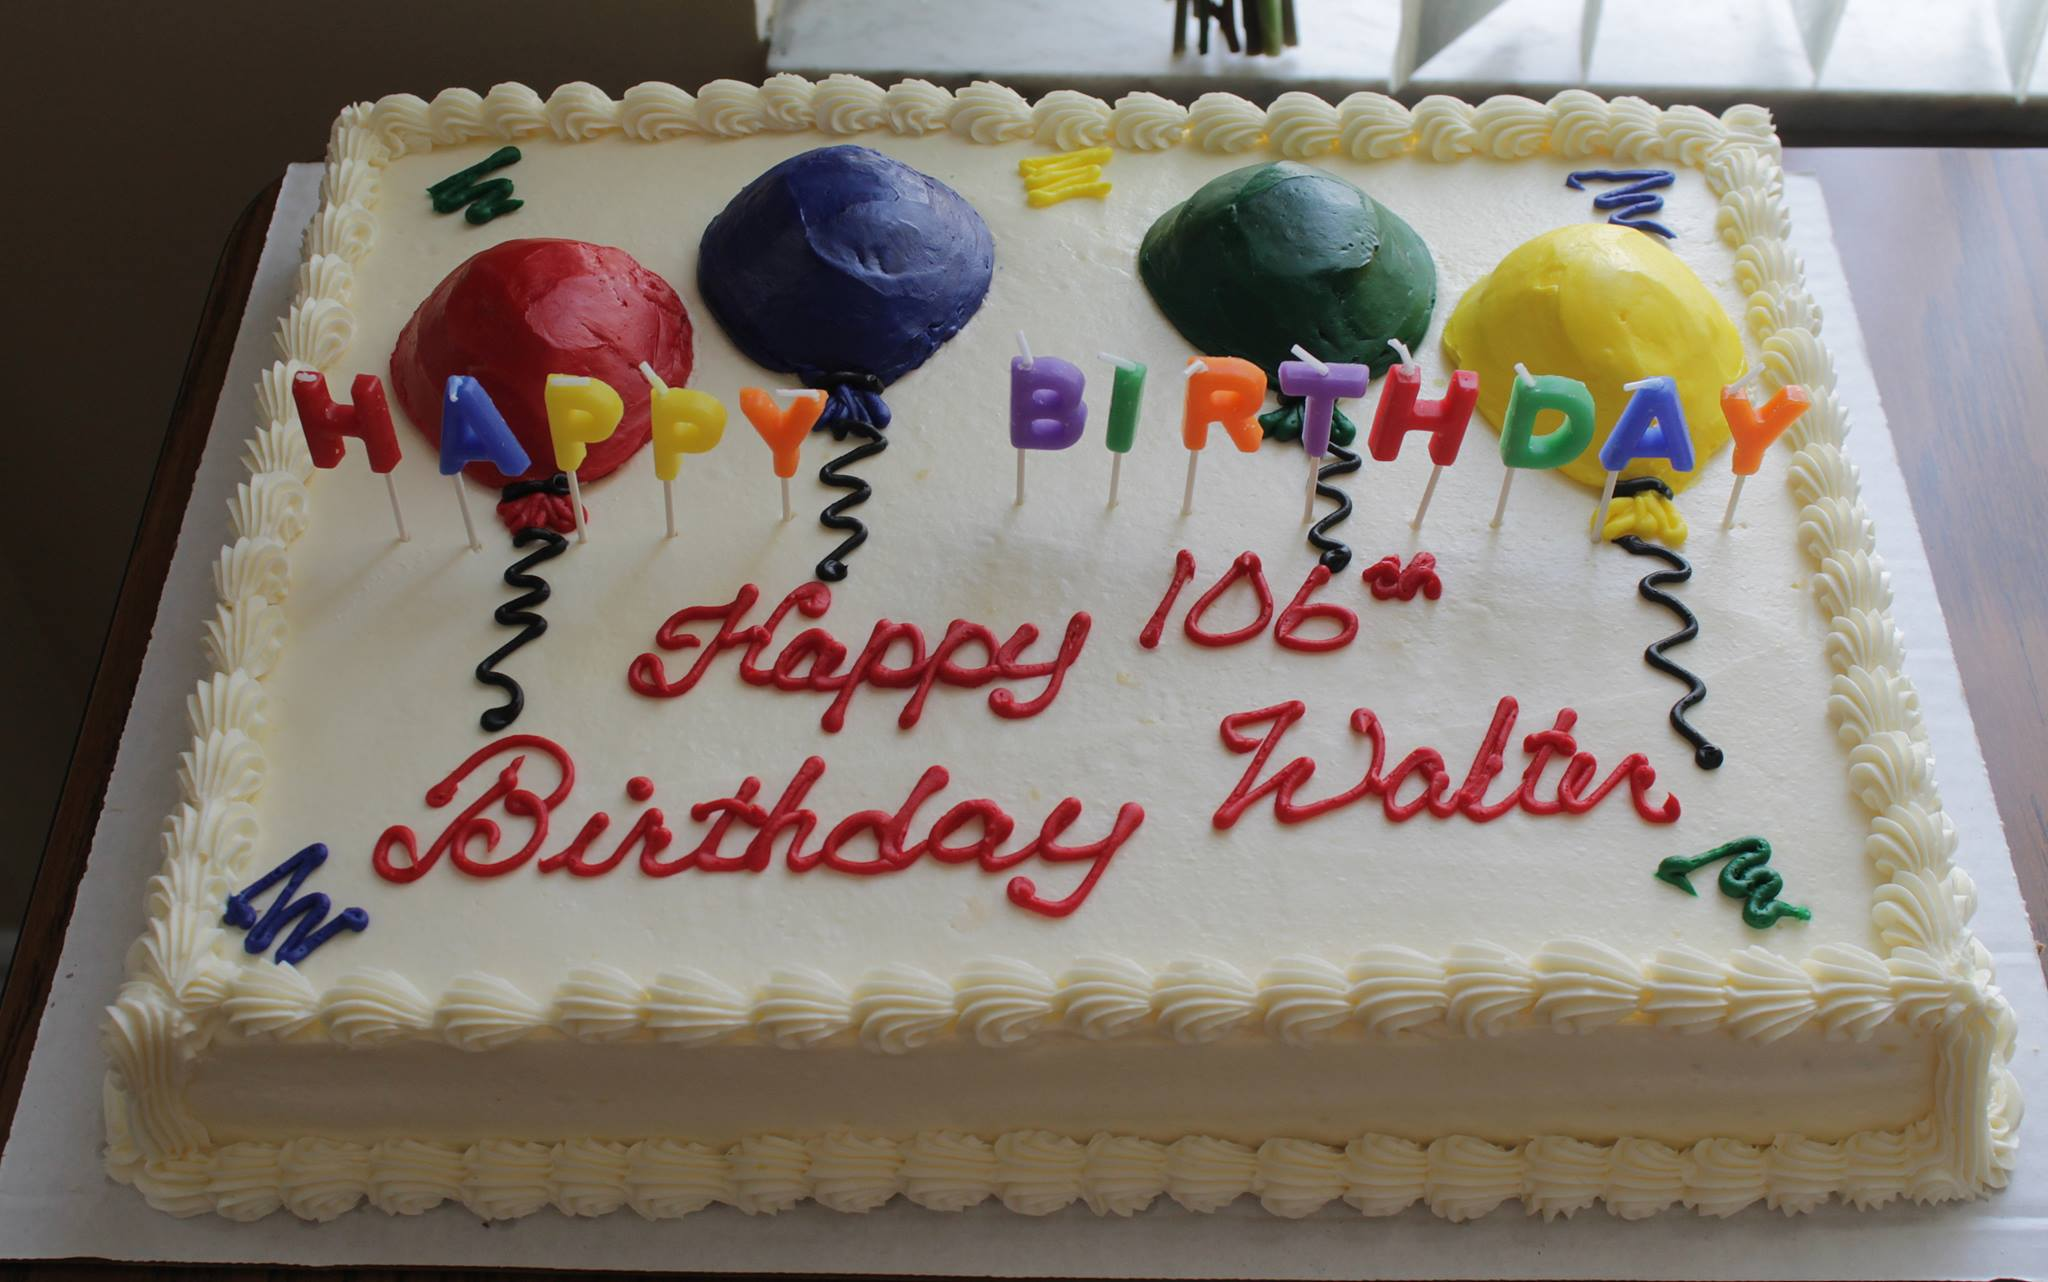 Cake for Walter Goulding's Birthday